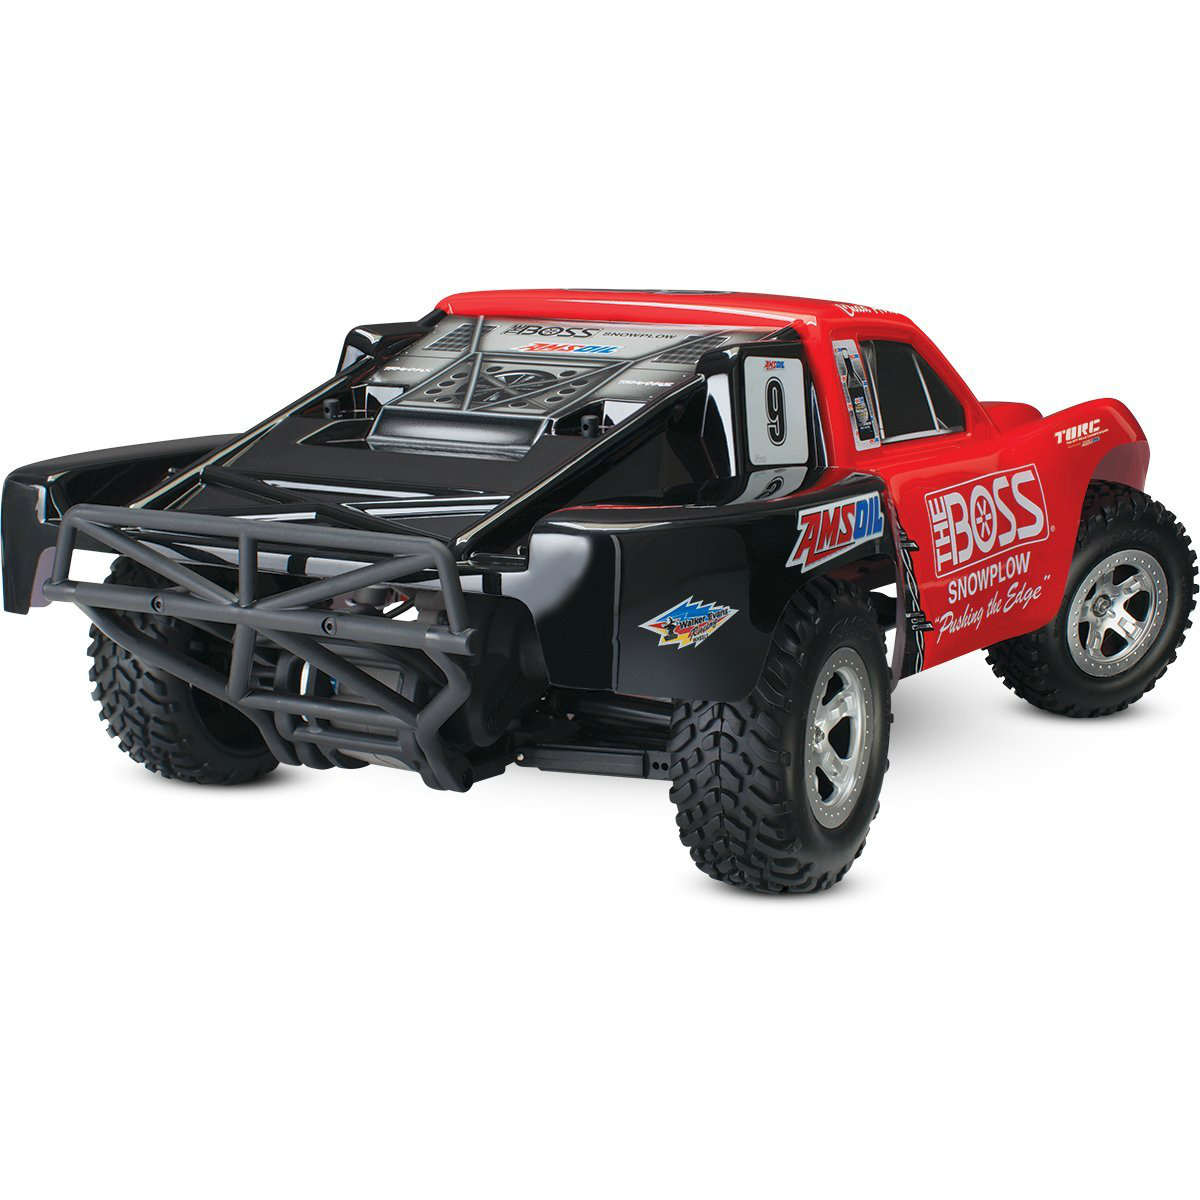 Traxxas 58034 1 Slash 2wd 10 Racing Truck For Sale In Jamaica Scale Pro Short Course Race